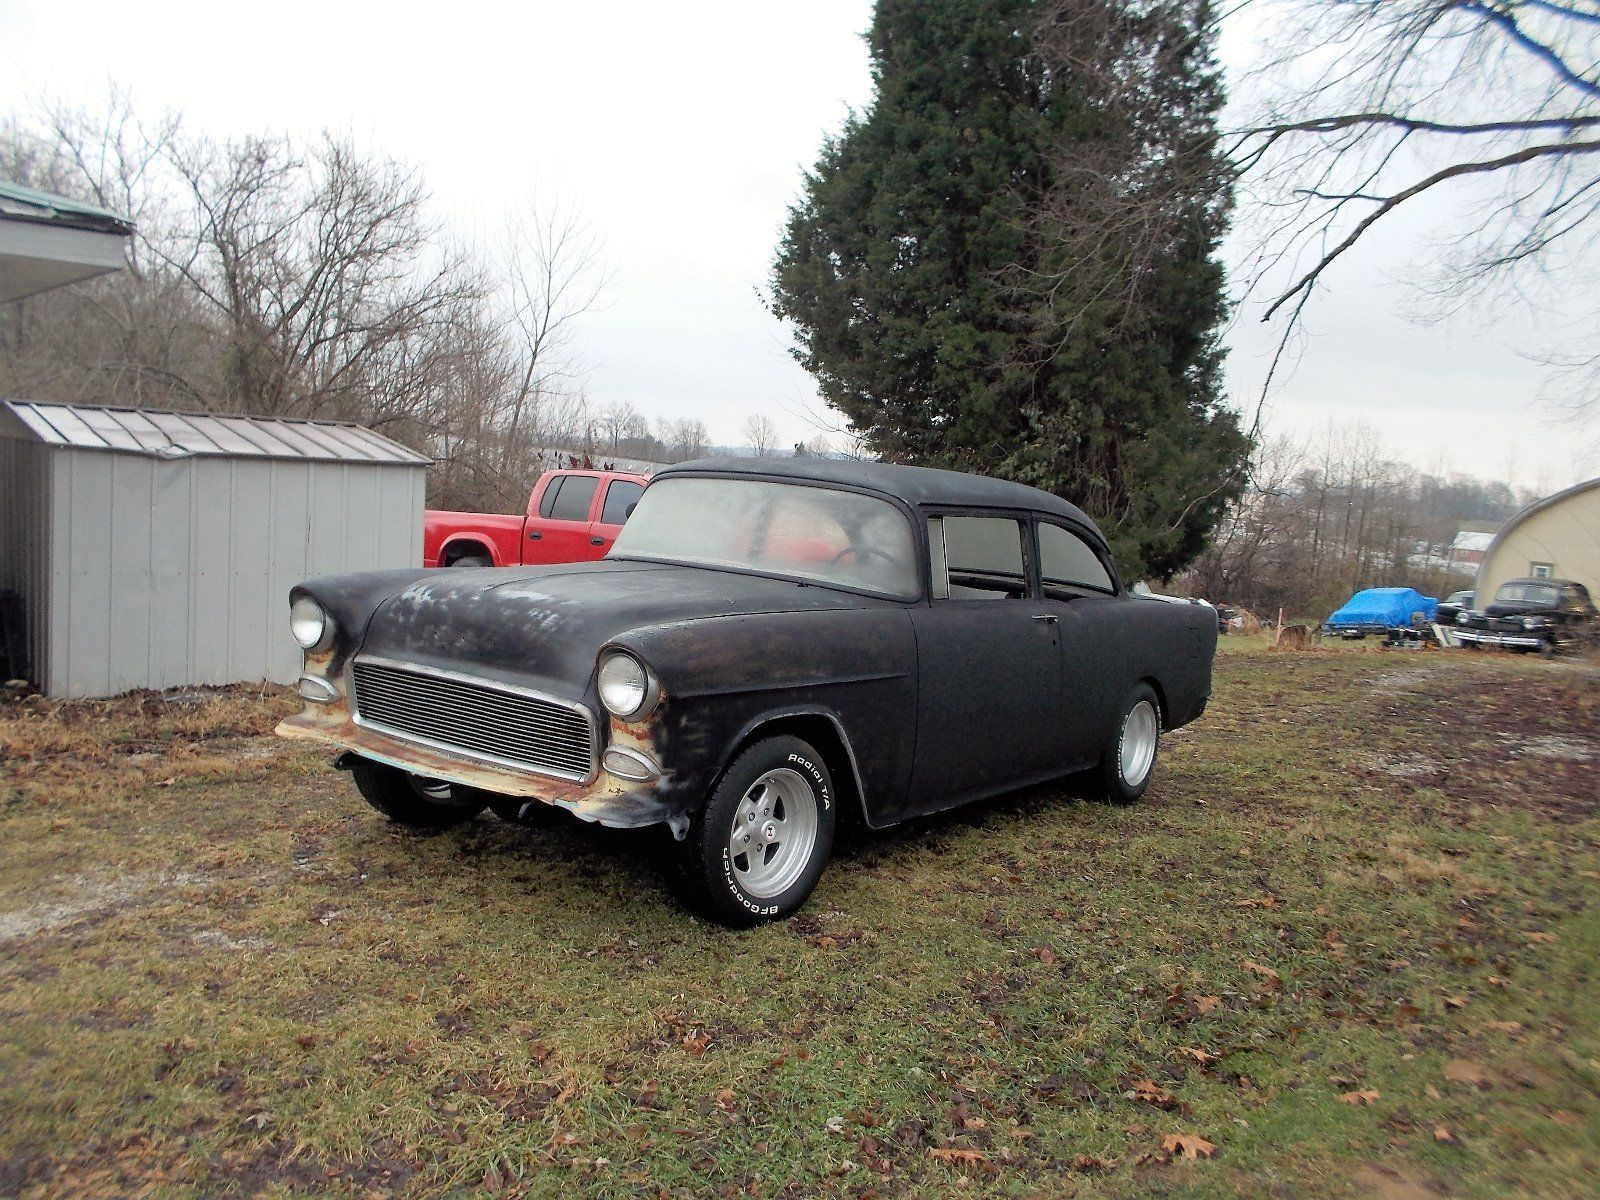 1955 chevy 2dr oldschool custom project car for sale. Black Bedroom Furniture Sets. Home Design Ideas